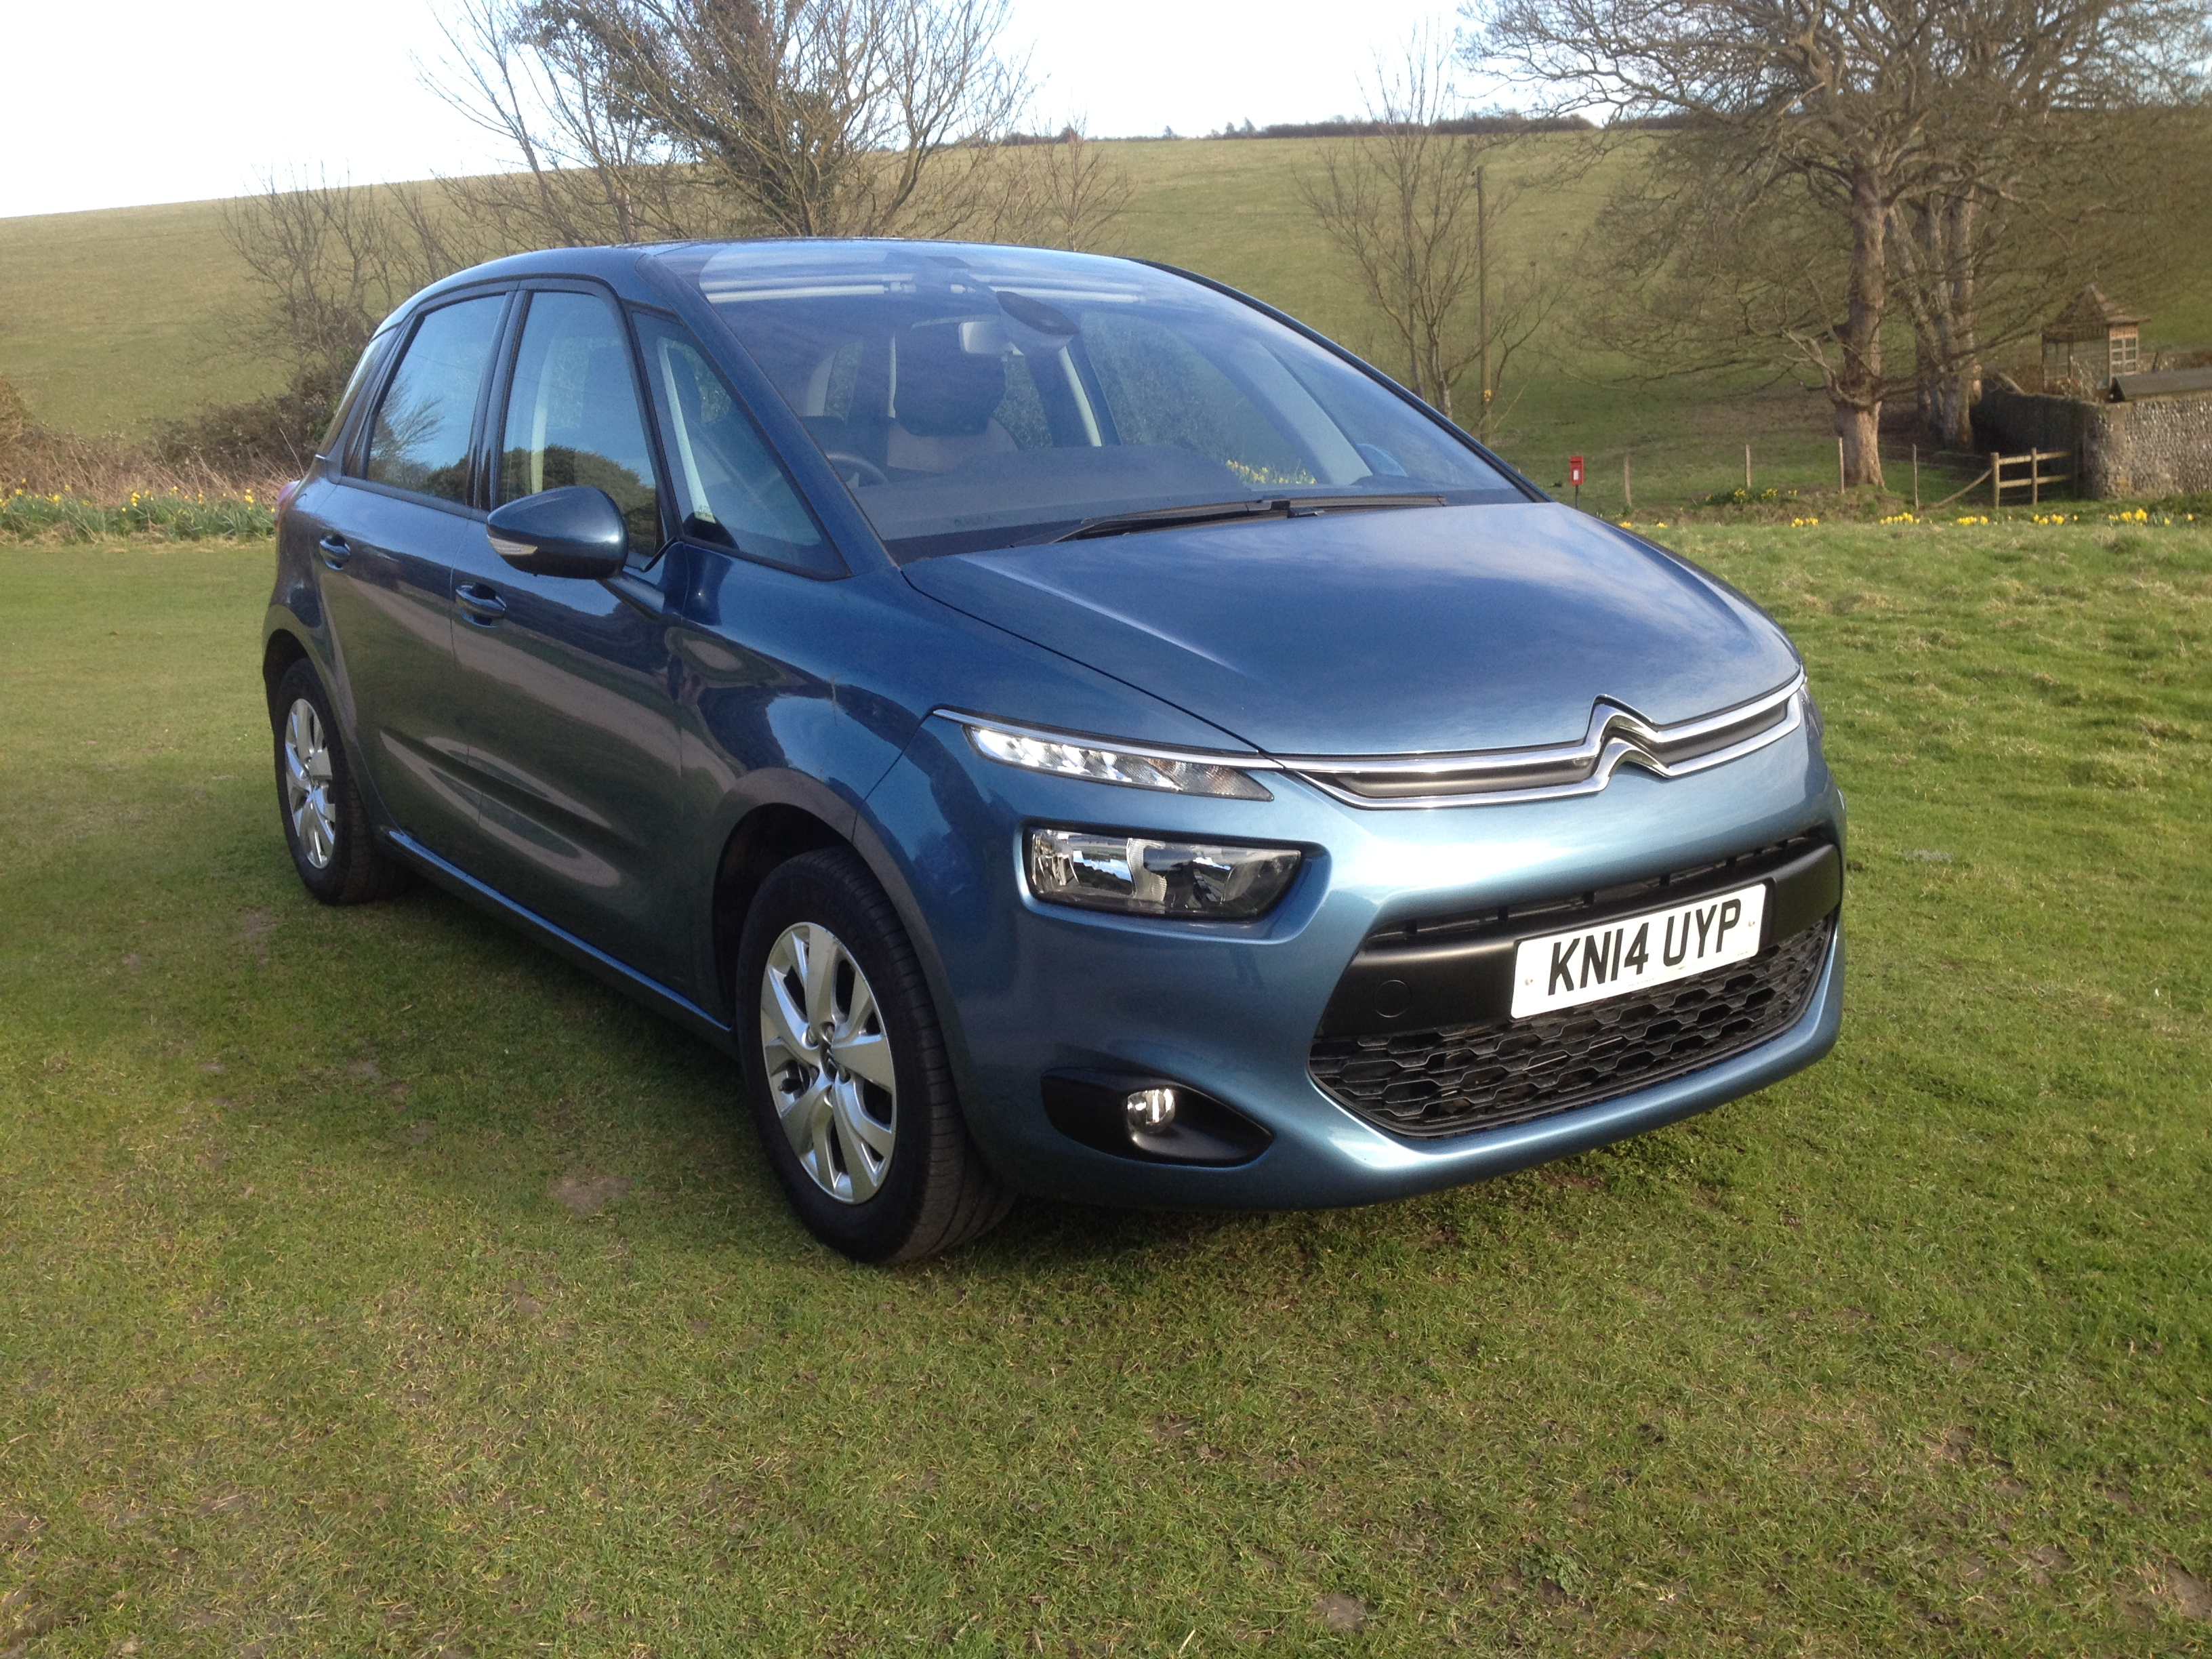 2014 citroen c4 picasso vtr trade price. Black Bedroom Furniture Sets. Home Design Ideas